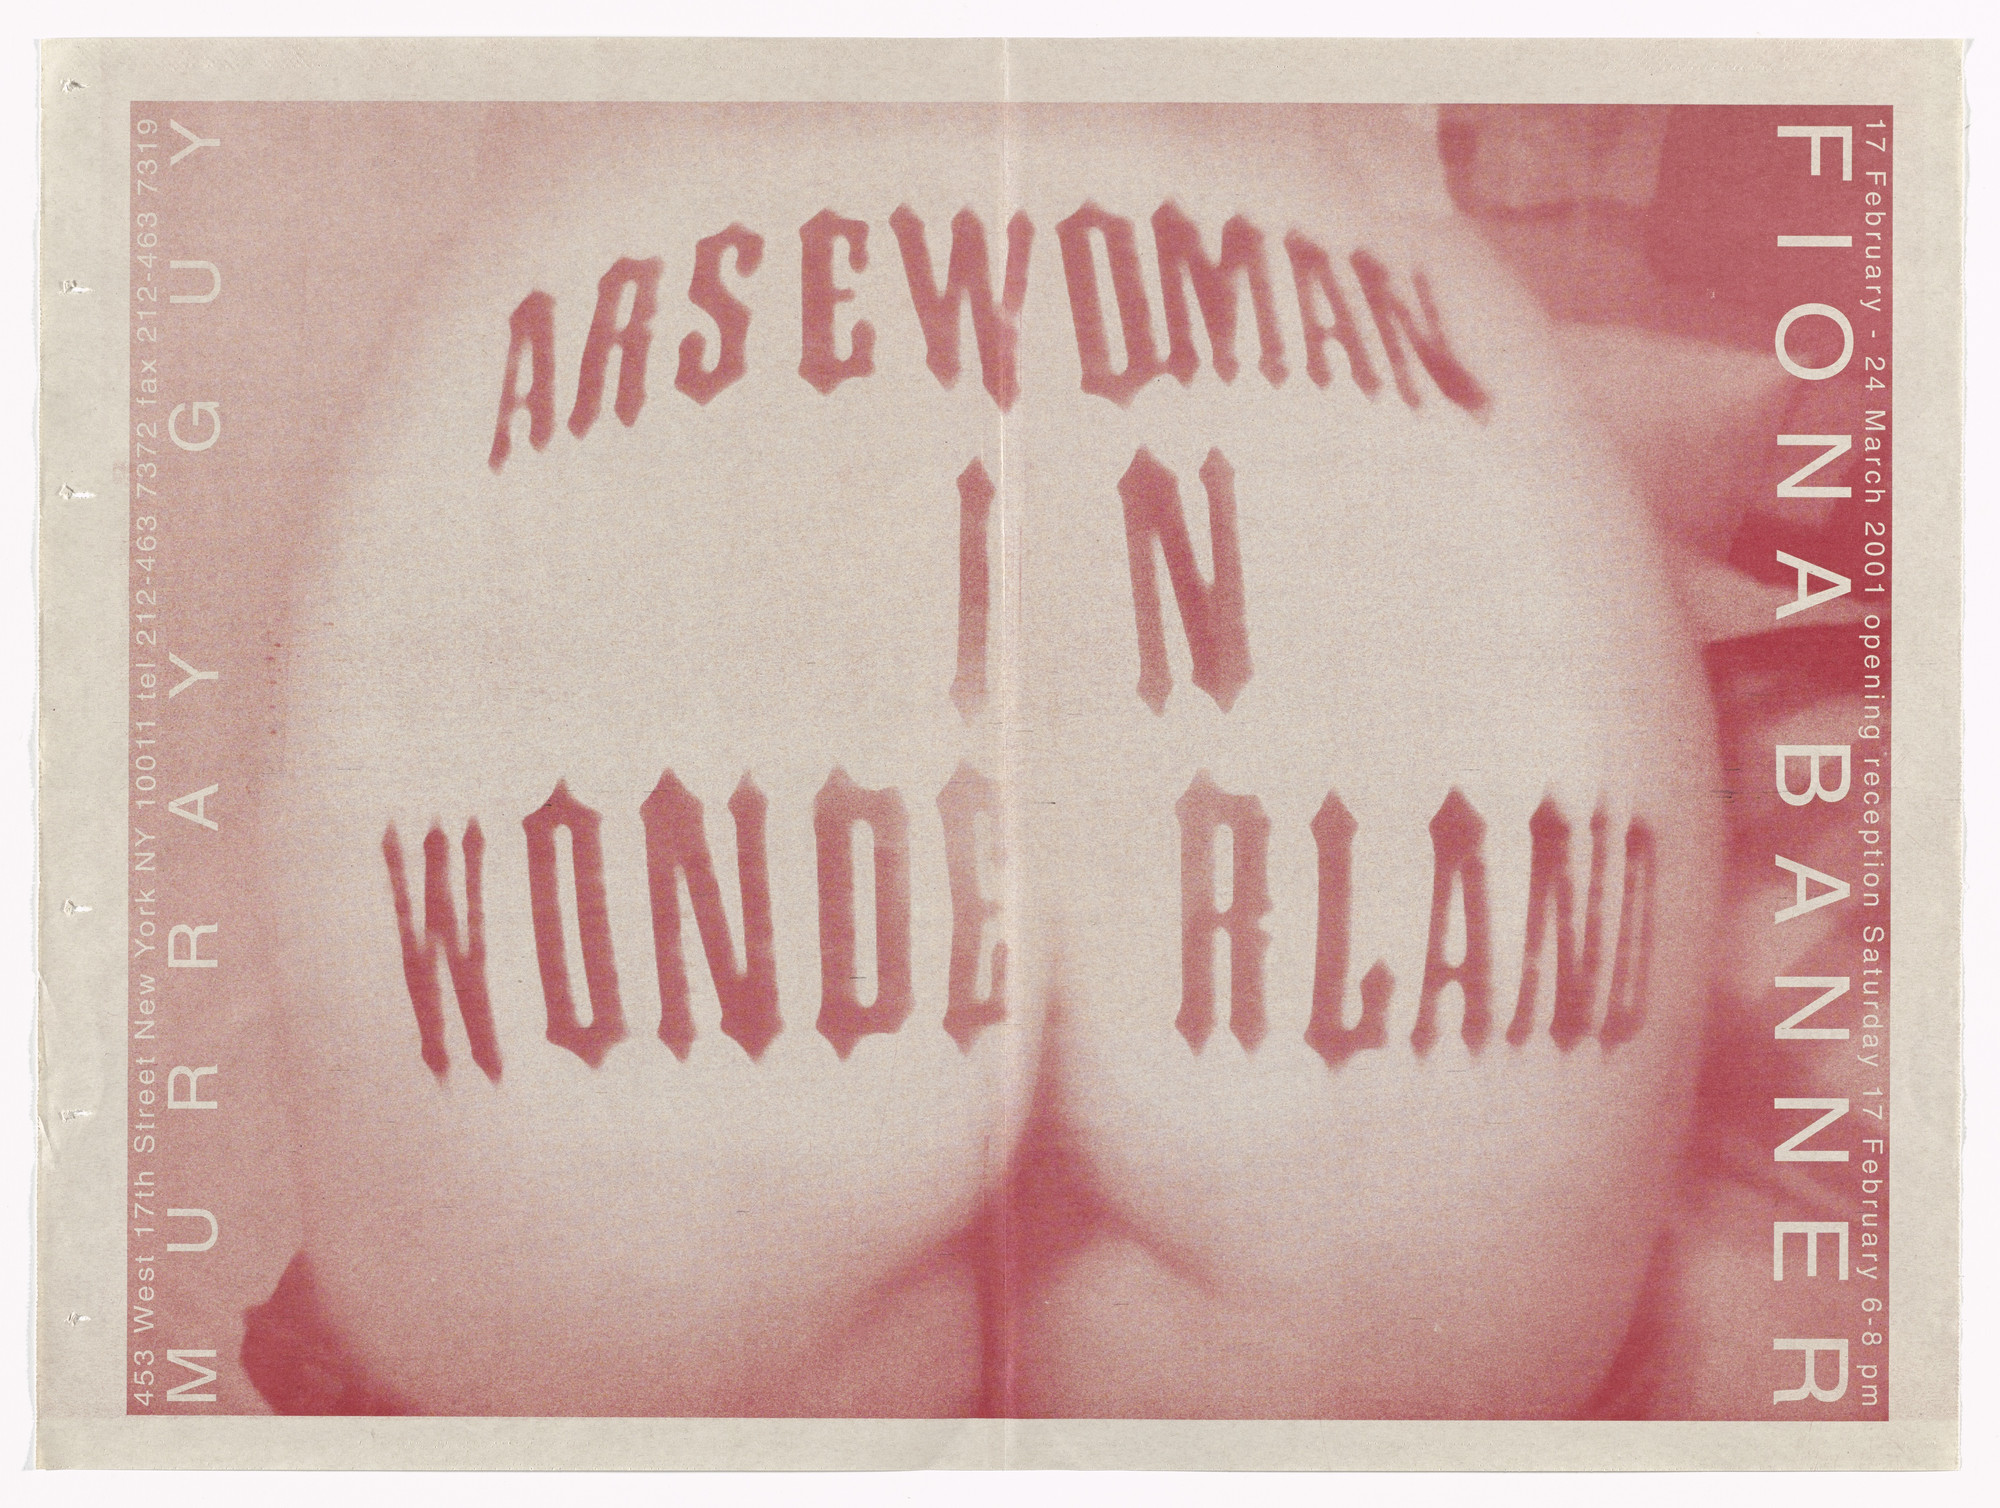 Fiona Banner. Poster for Arsewoman in Wonderland, Murray Guy Gallery, New York, February 17-March 24, 2001. 2001